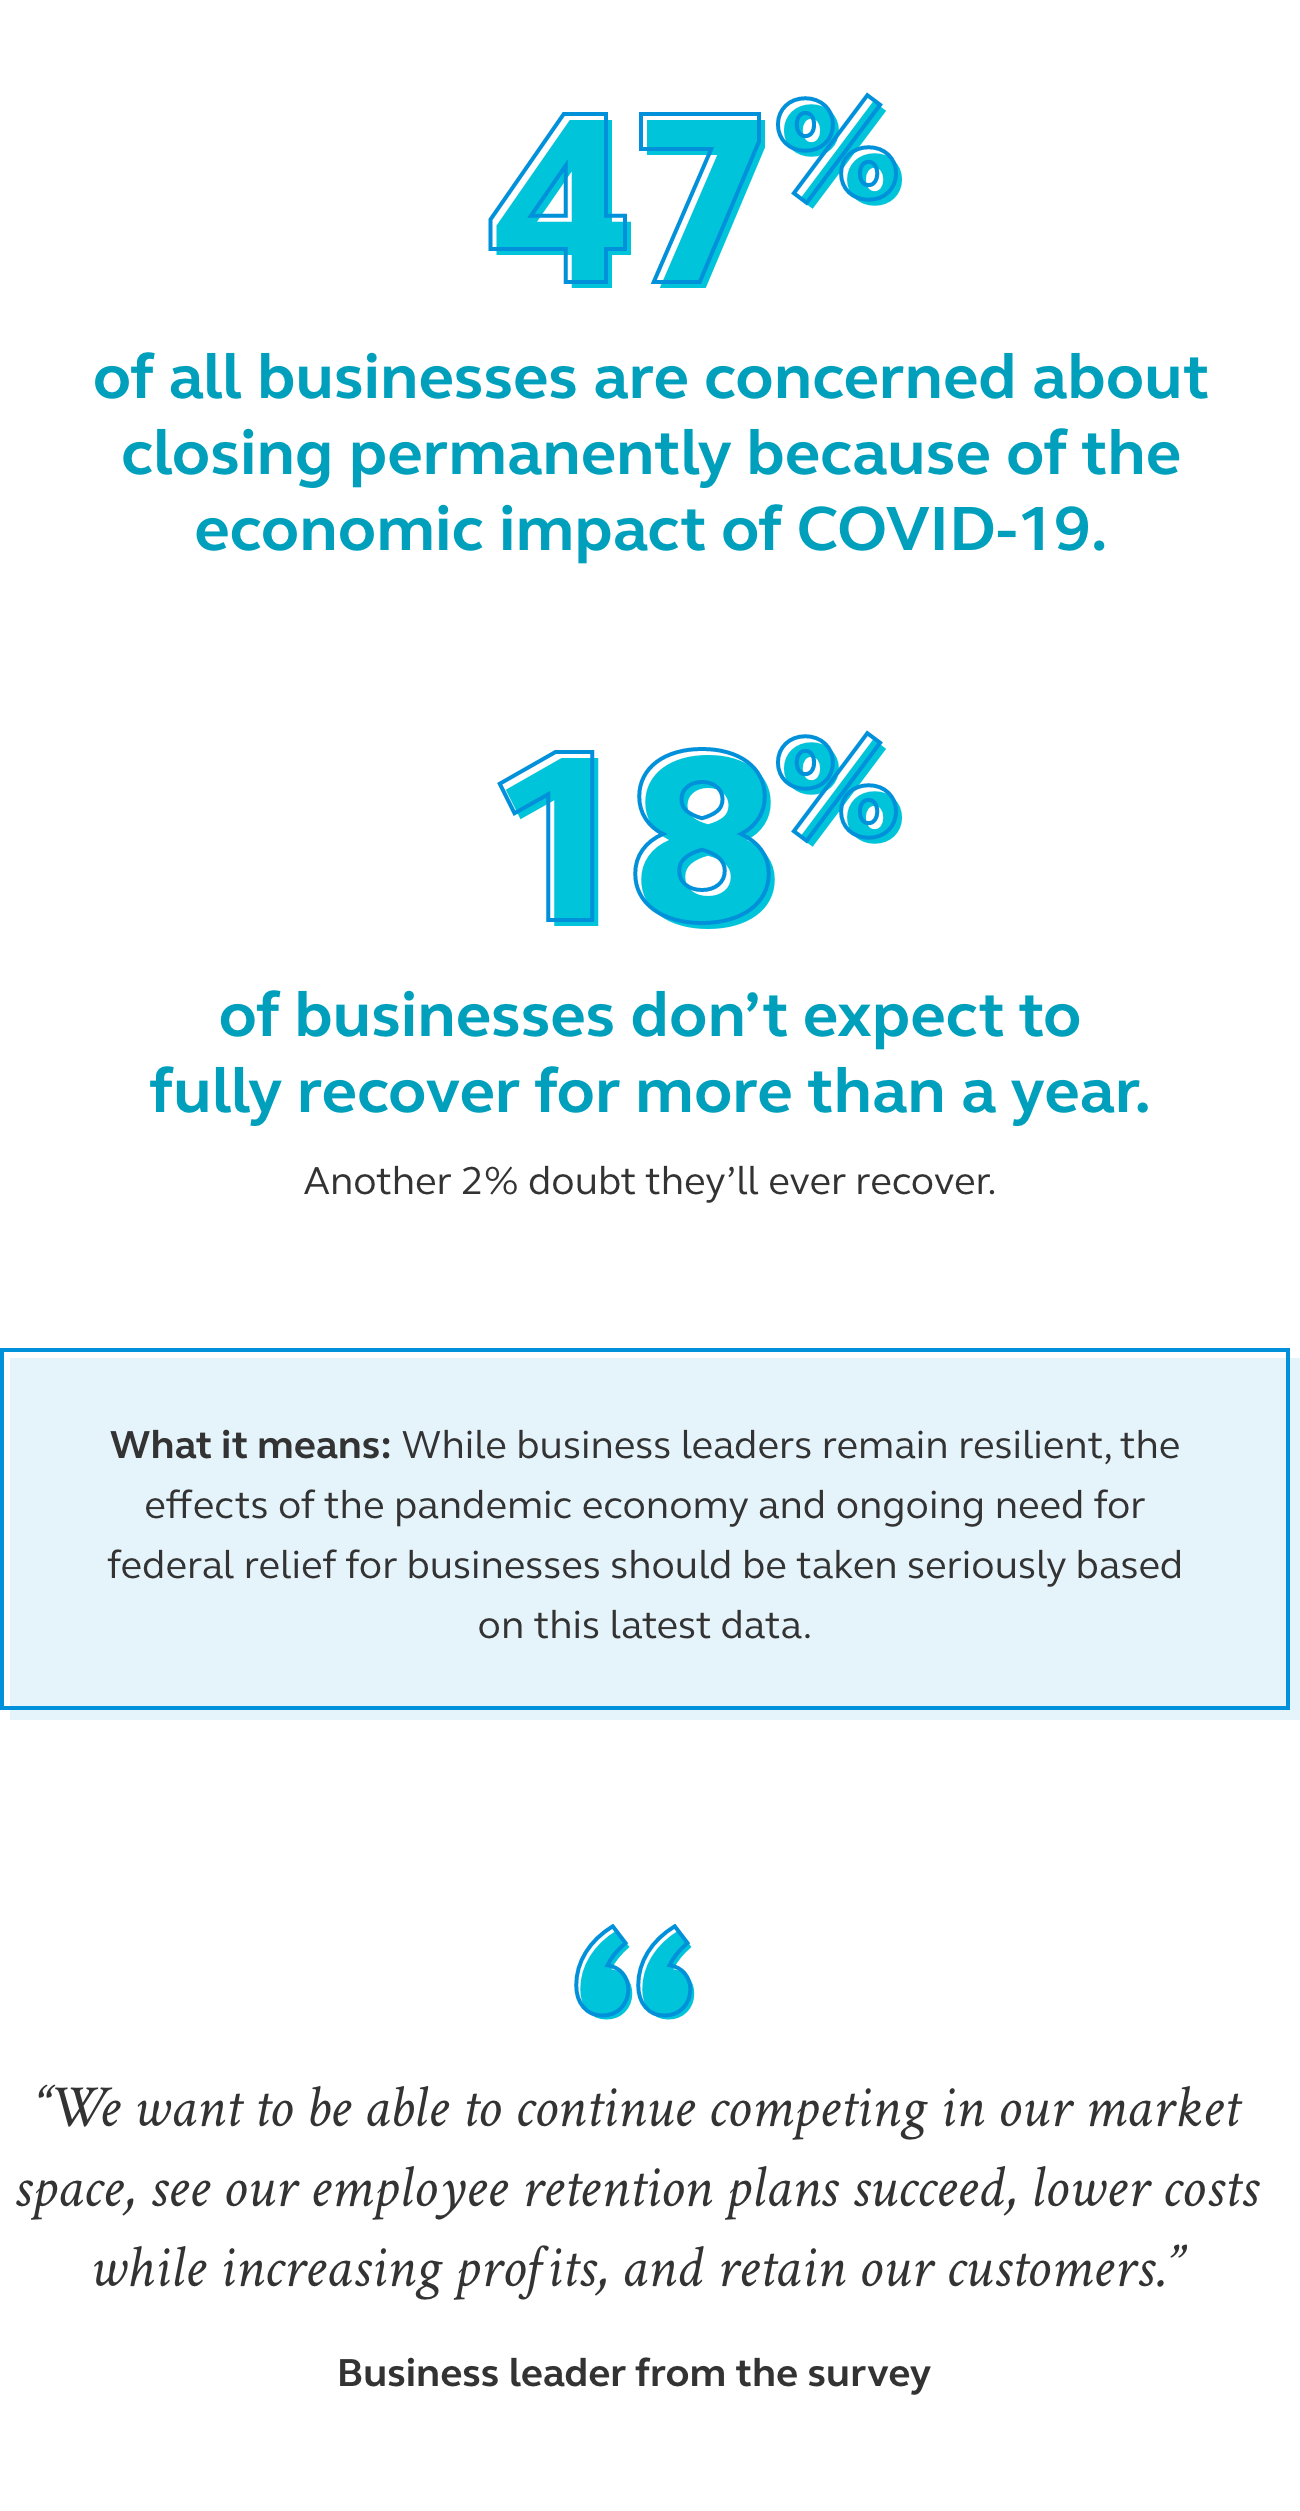 Graphic showing that 47% of all businesses are concerned about closing permanently because of the economic impact of COVID-19.